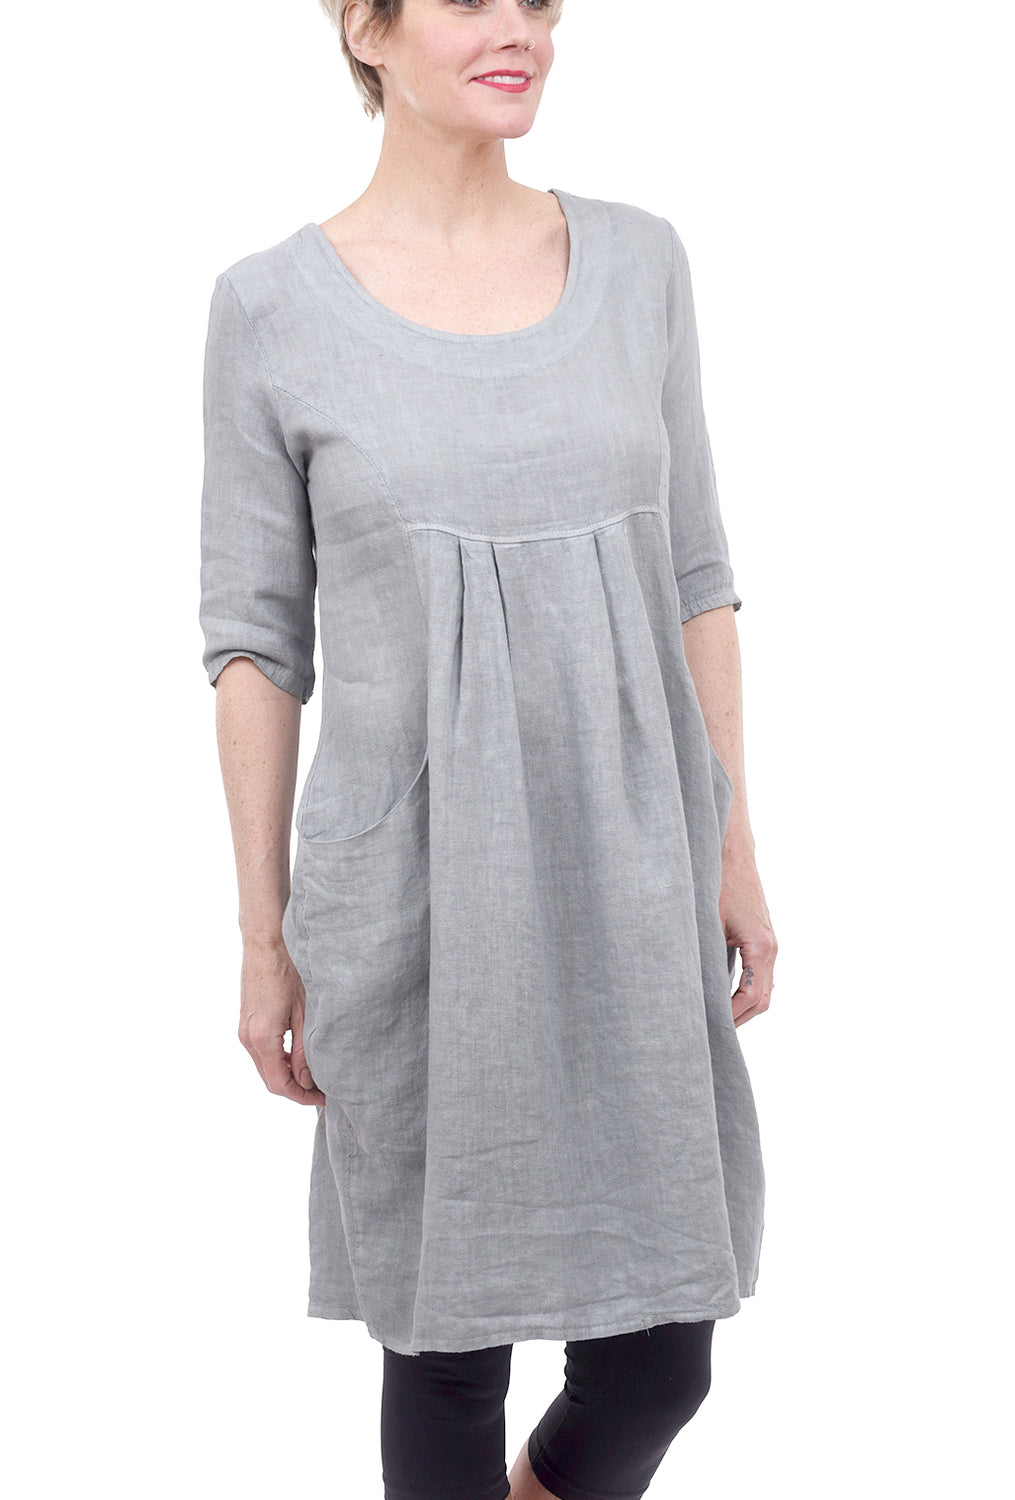 Lands Downunder Linen Empire Lady Dress, Slate